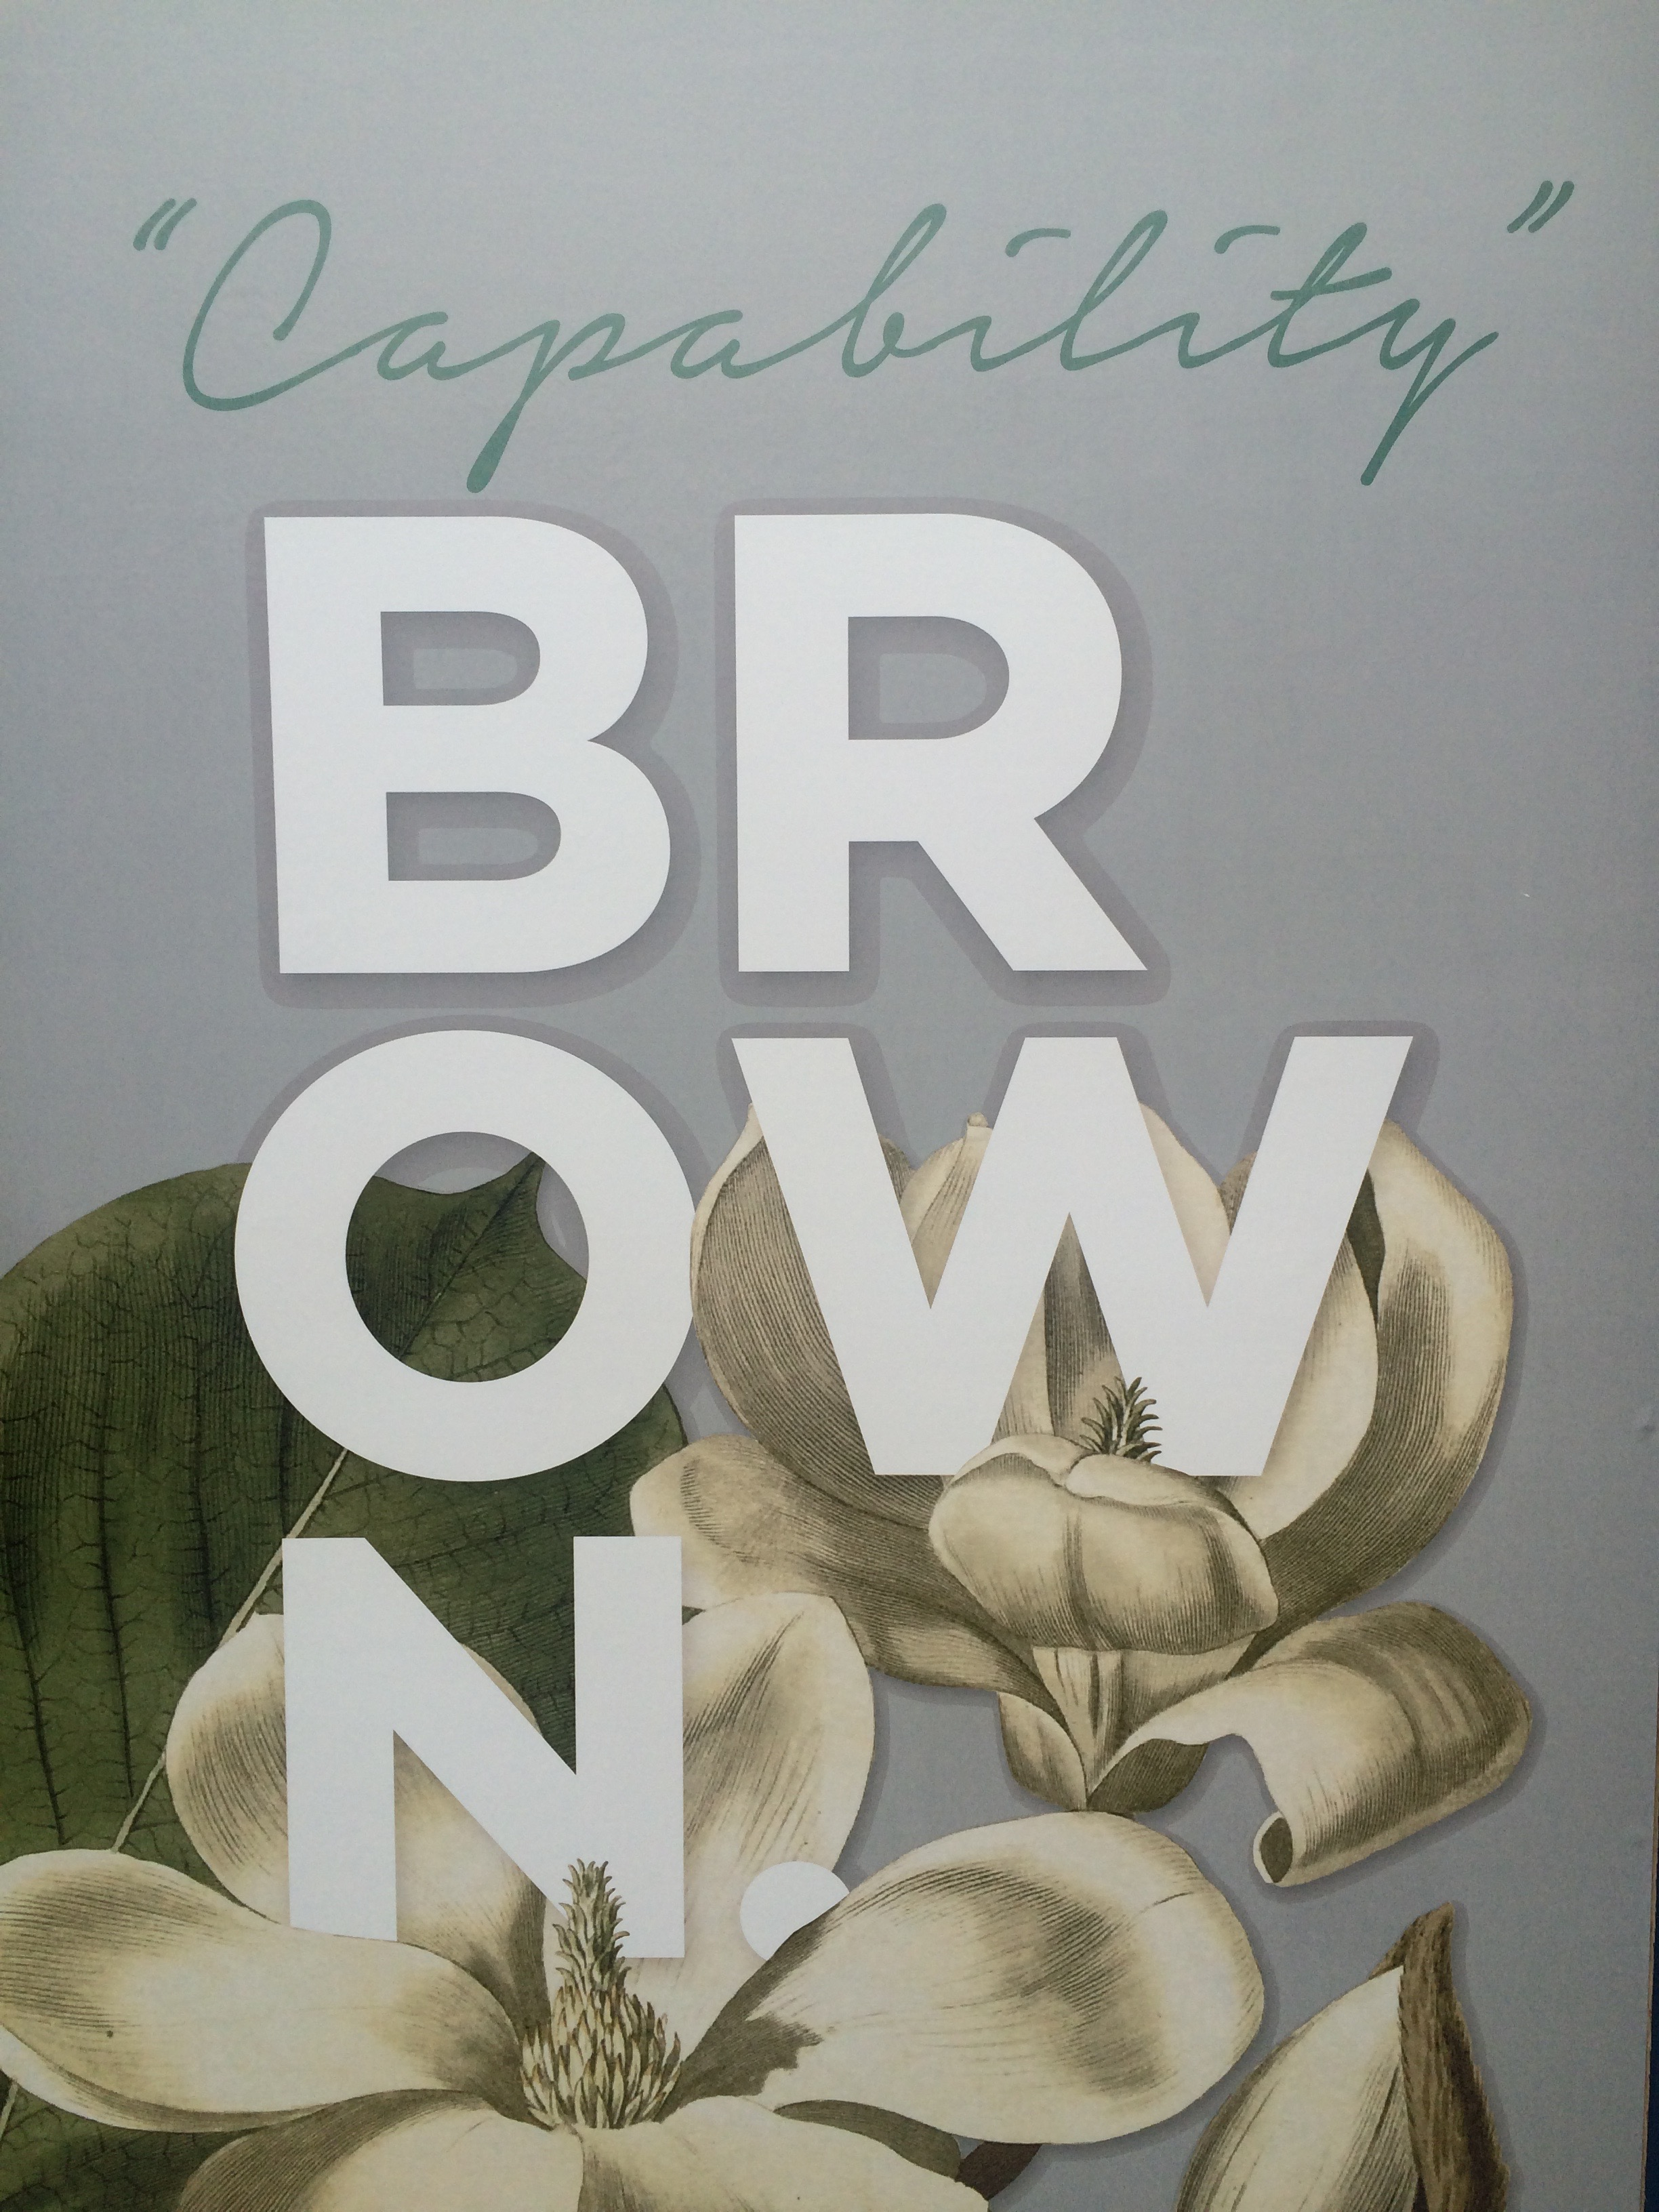 Capability Brown 300